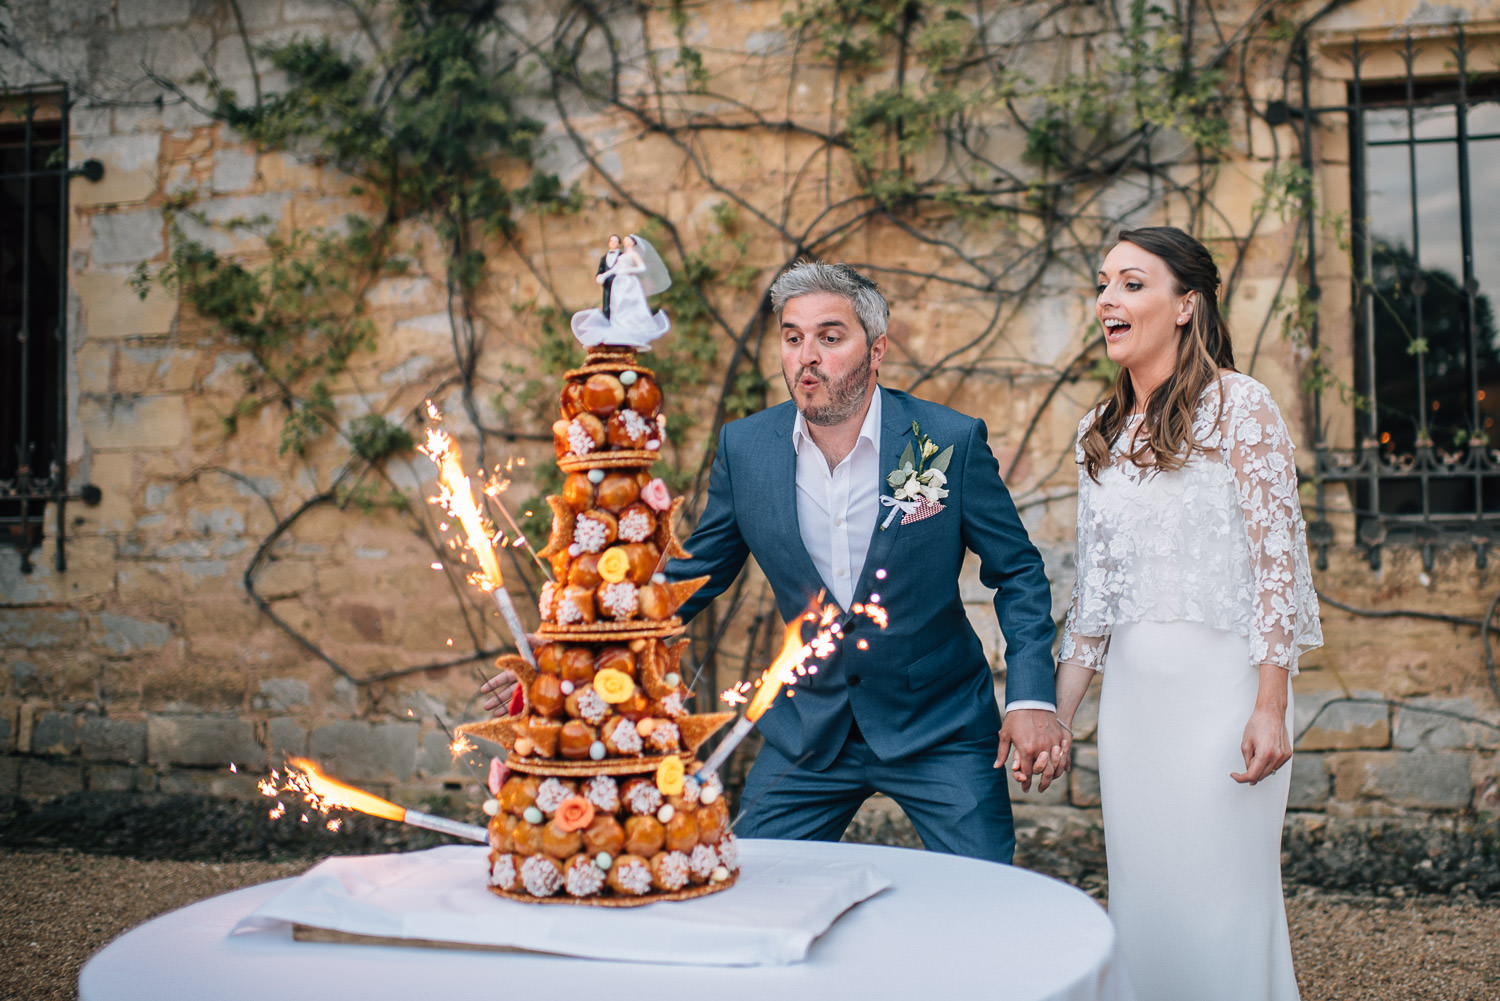 cake cutting at french wedding chateau de bourlie by creative and alternative london wedding photographer the shannons photography